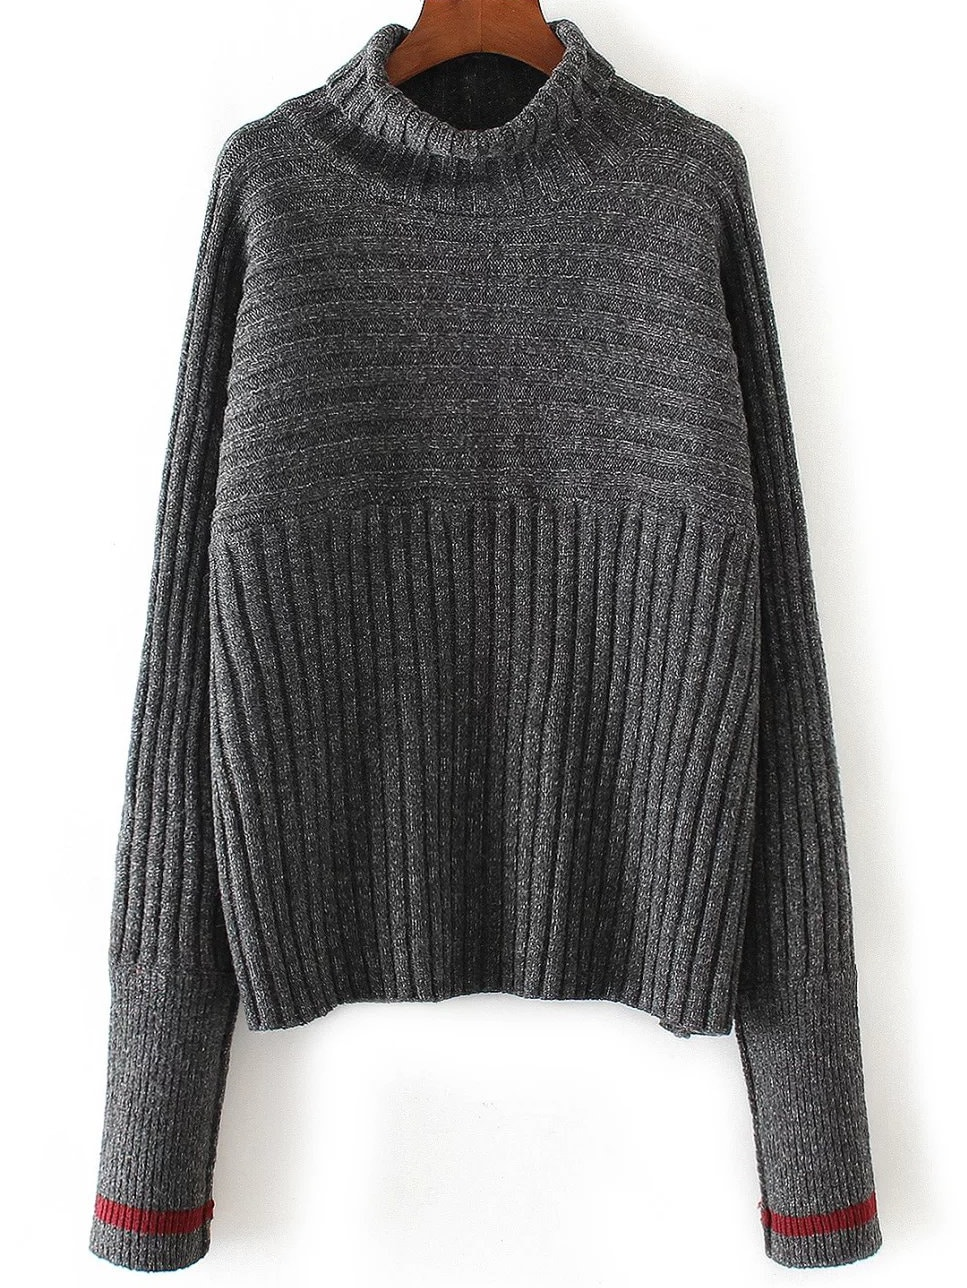 Dark Grey Turtleneck Contrast Cuff Ribbed Sweater sweater161014201